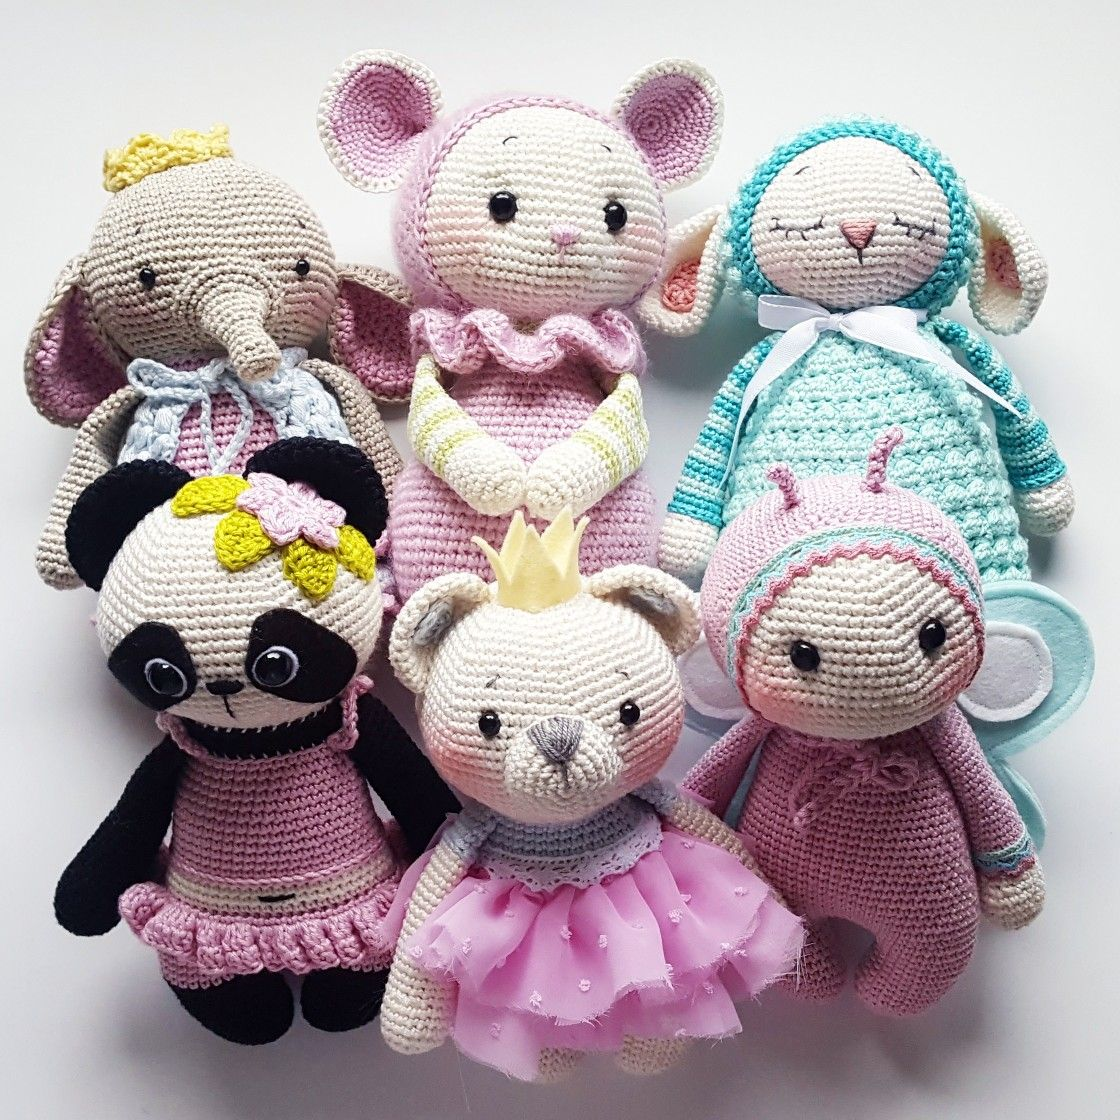 Amigurumi Crochet Pattern Amalou.Designs | crocheted animals ...